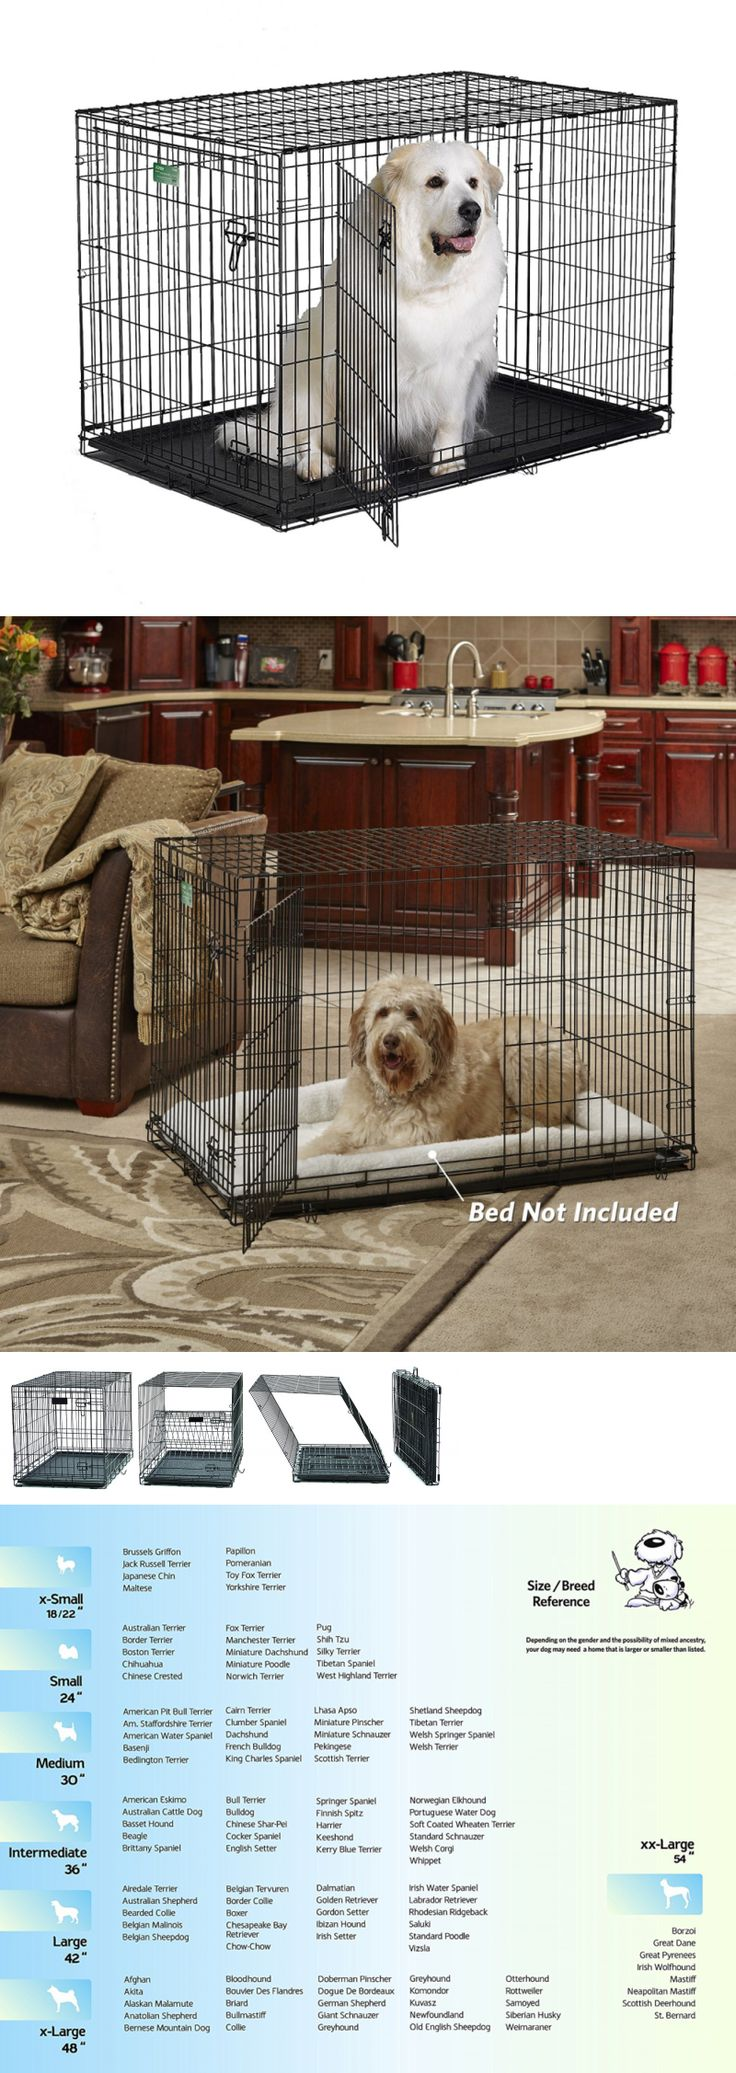 Cages and Crates 121851: Midwest Crate Double-Door Training Travel Life Stages 48X30x33 Pet Dog Kennel BUY IT NOW ONLY: $63.43